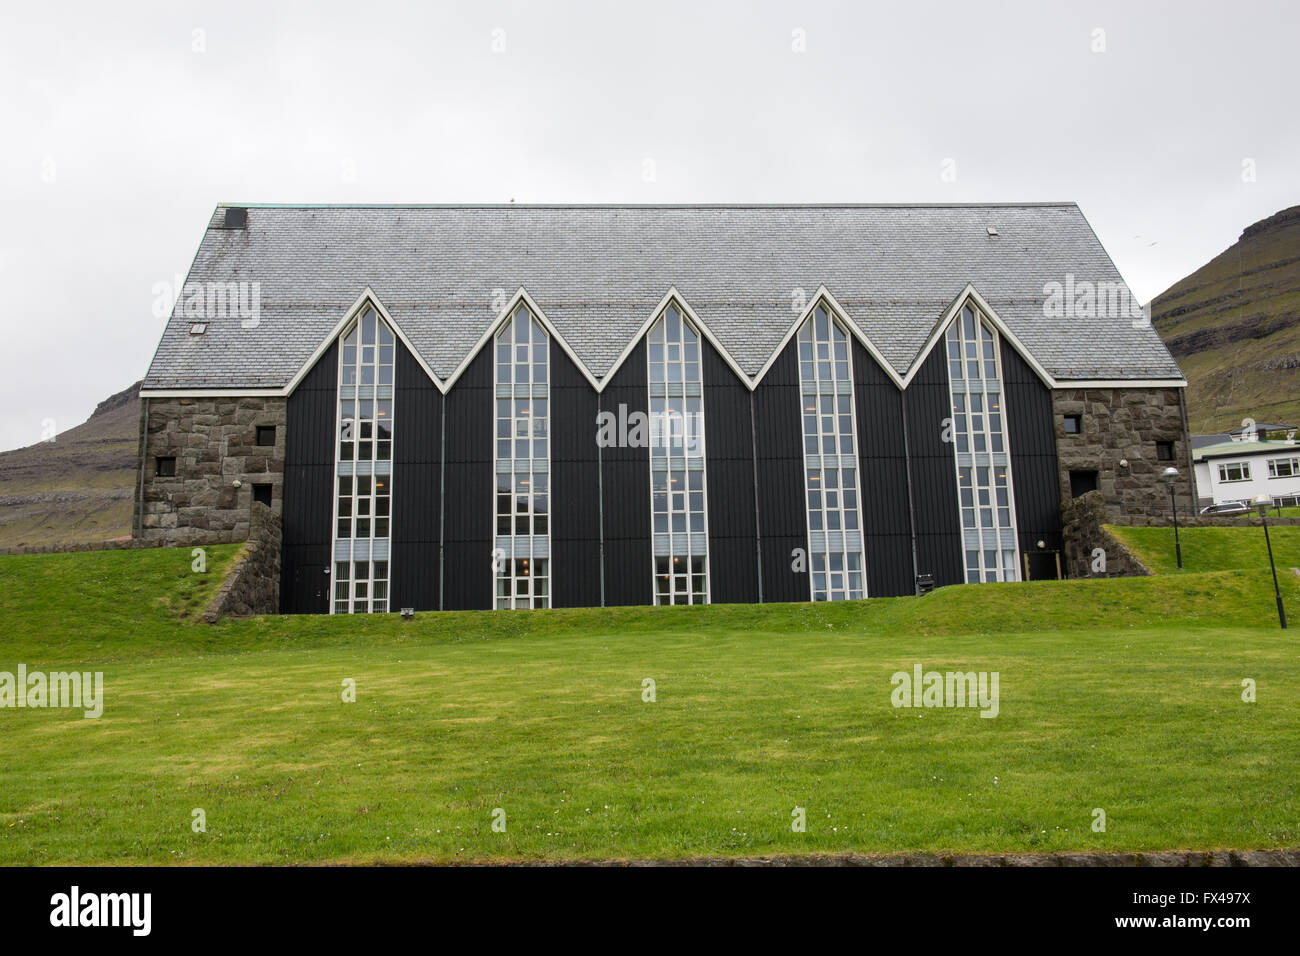 Church in Klaksvik as seen from the outside with landscape and mountain in the background - Stock Image